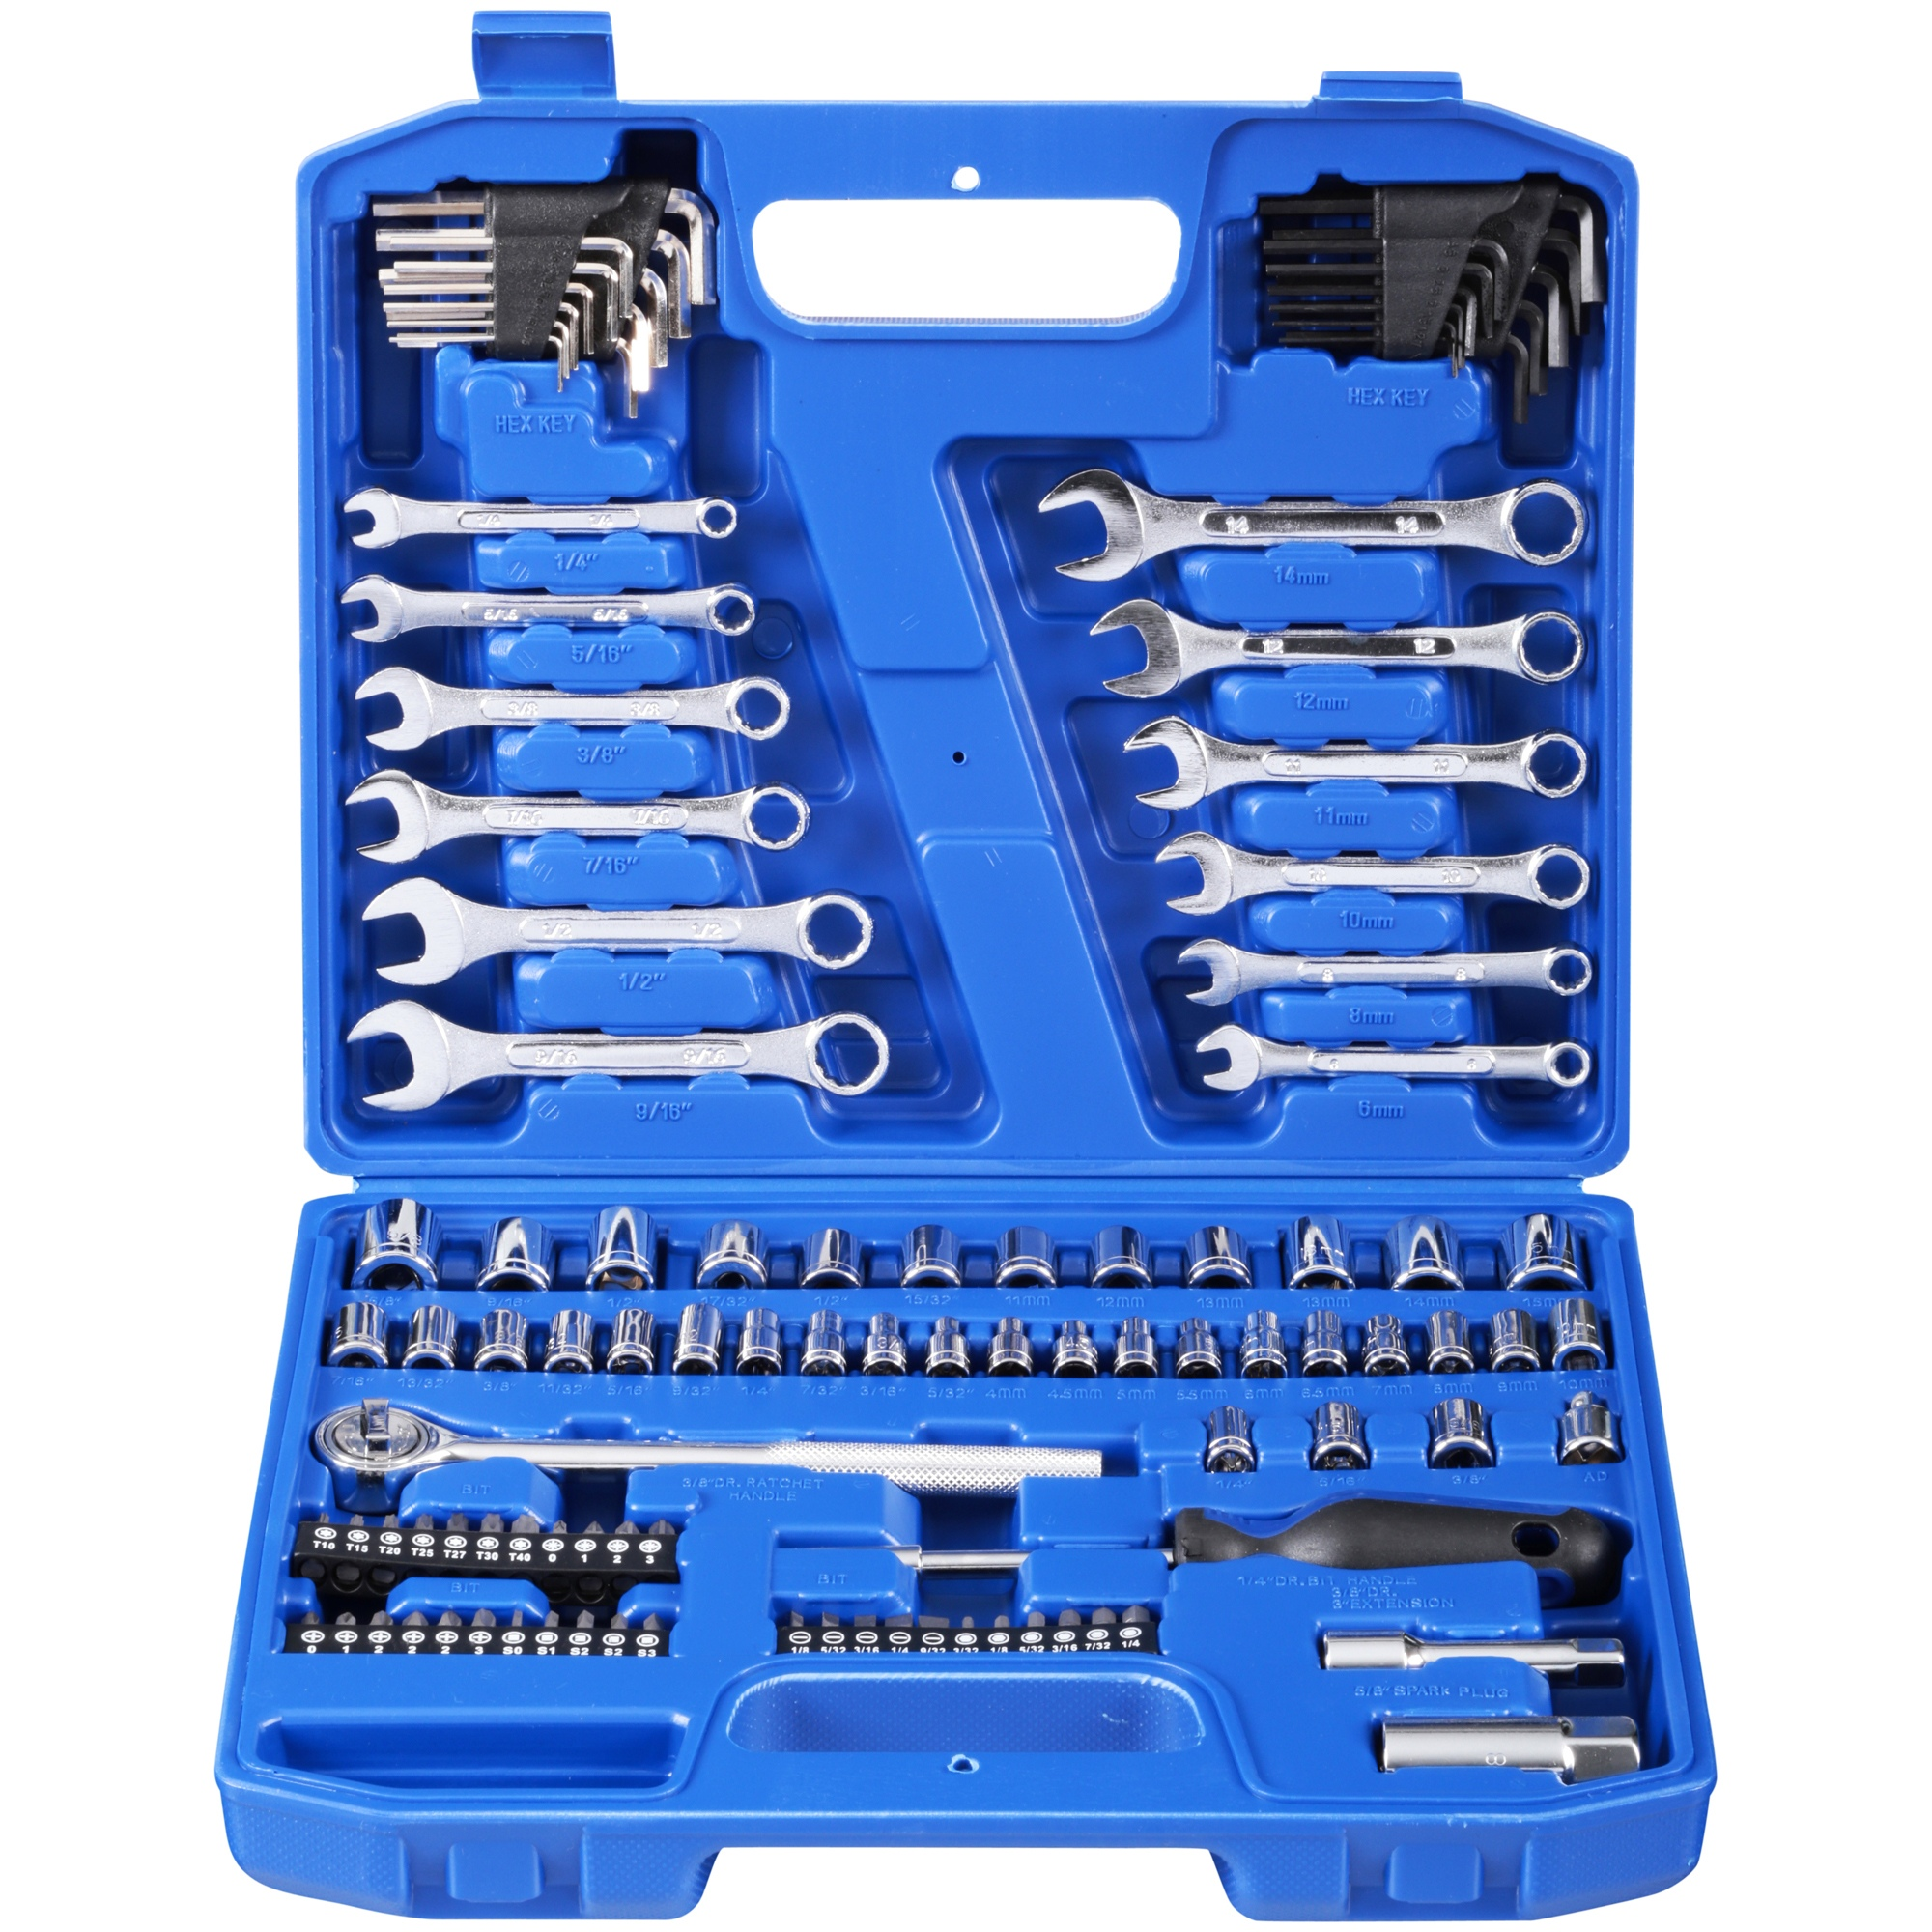 Hyper Tough 113 Piece 1/4-Inch and 3/8-Inch Mechanics Tool Set